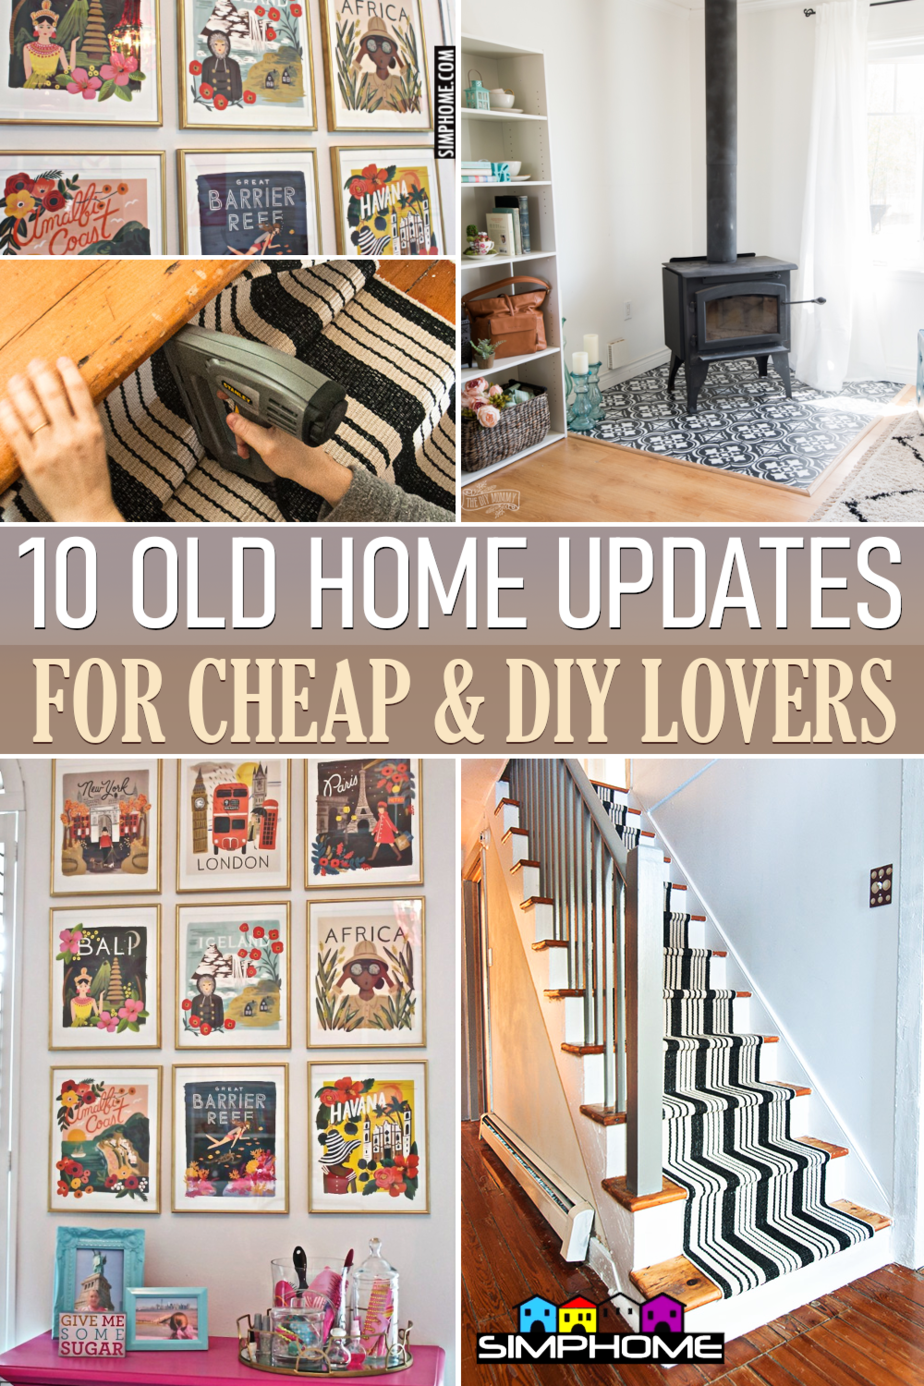 10 Ideas on how to update older homes on a budget via Simphome.comFeatured